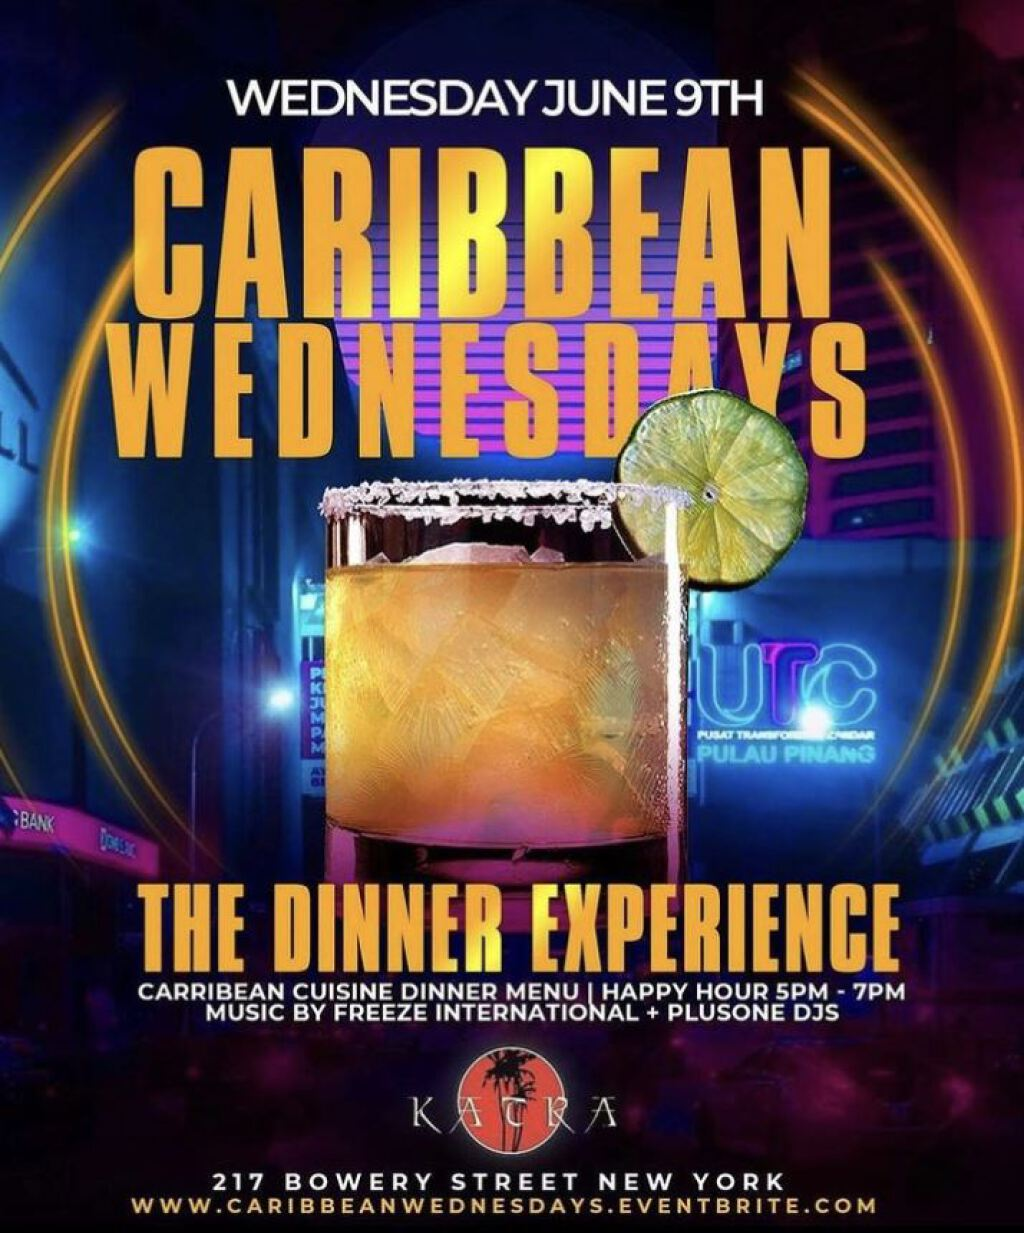 Caribbean Wednesdays flyer or graphic.